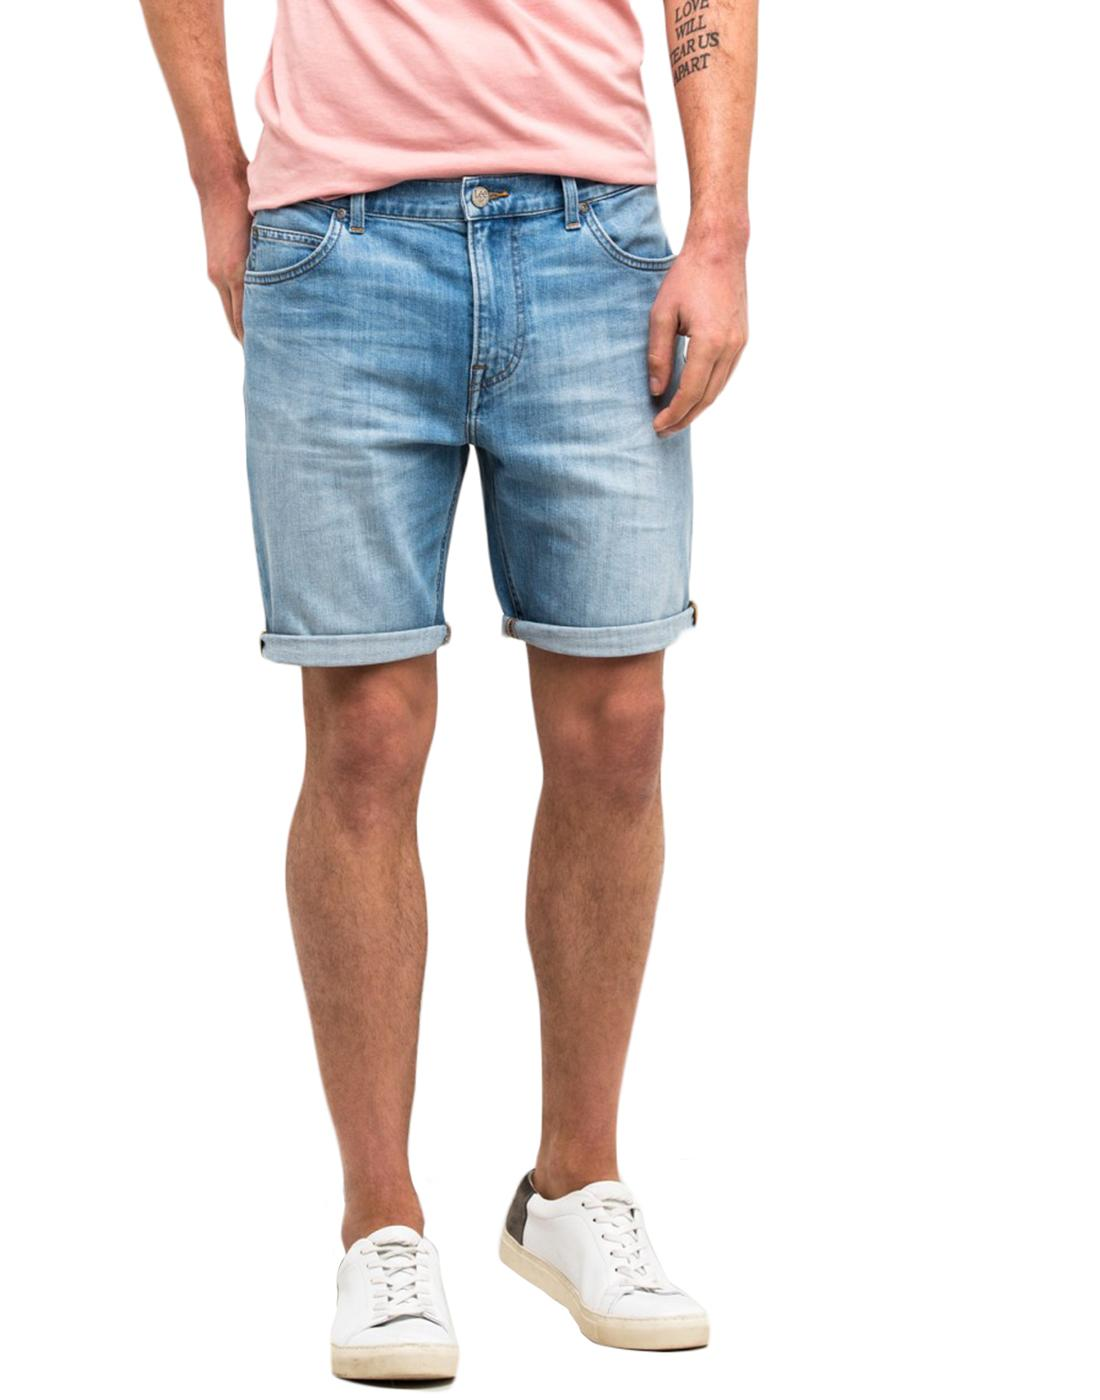 Rider Shorts LEE JEANS Retro Denim Shorts -Kick It